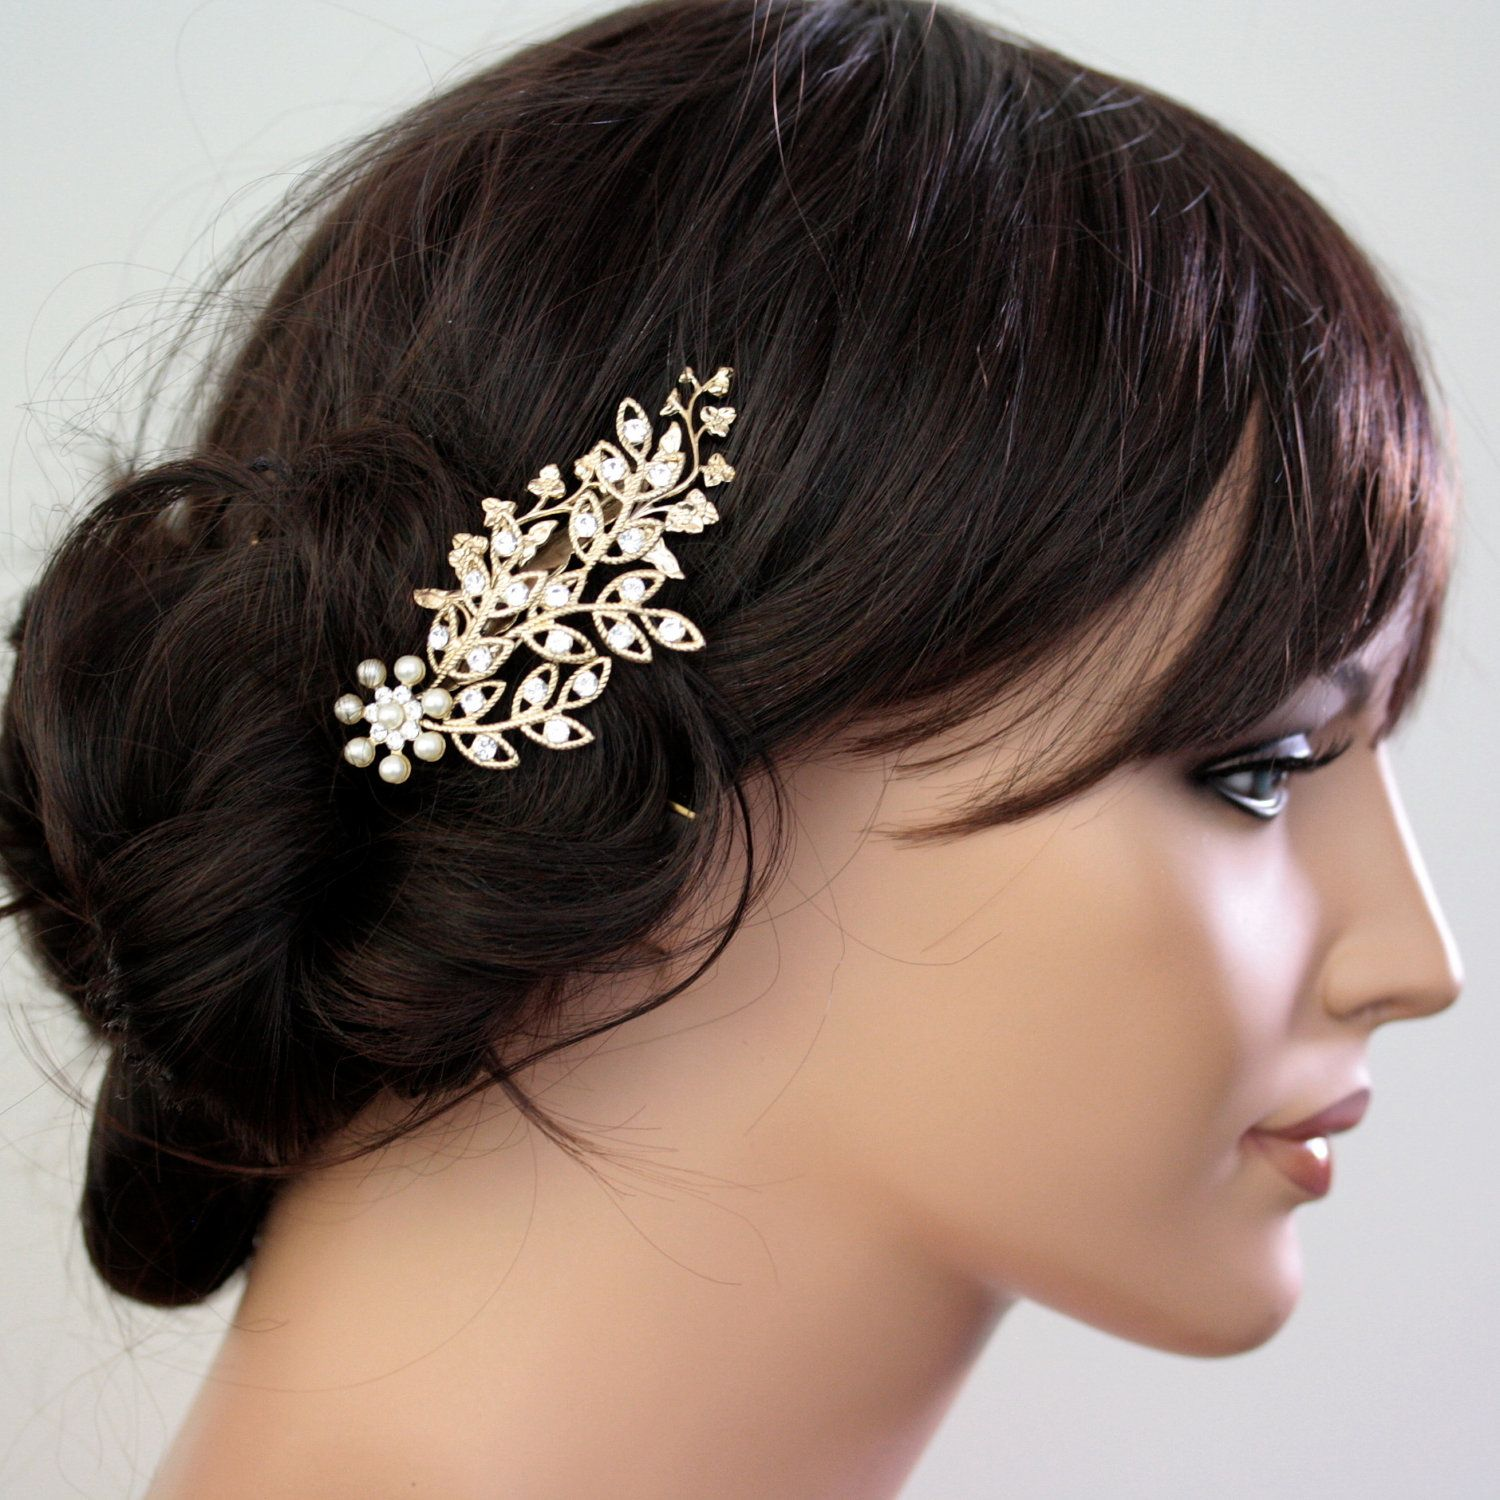 gold hair accessories   Fashion and Hairstyles